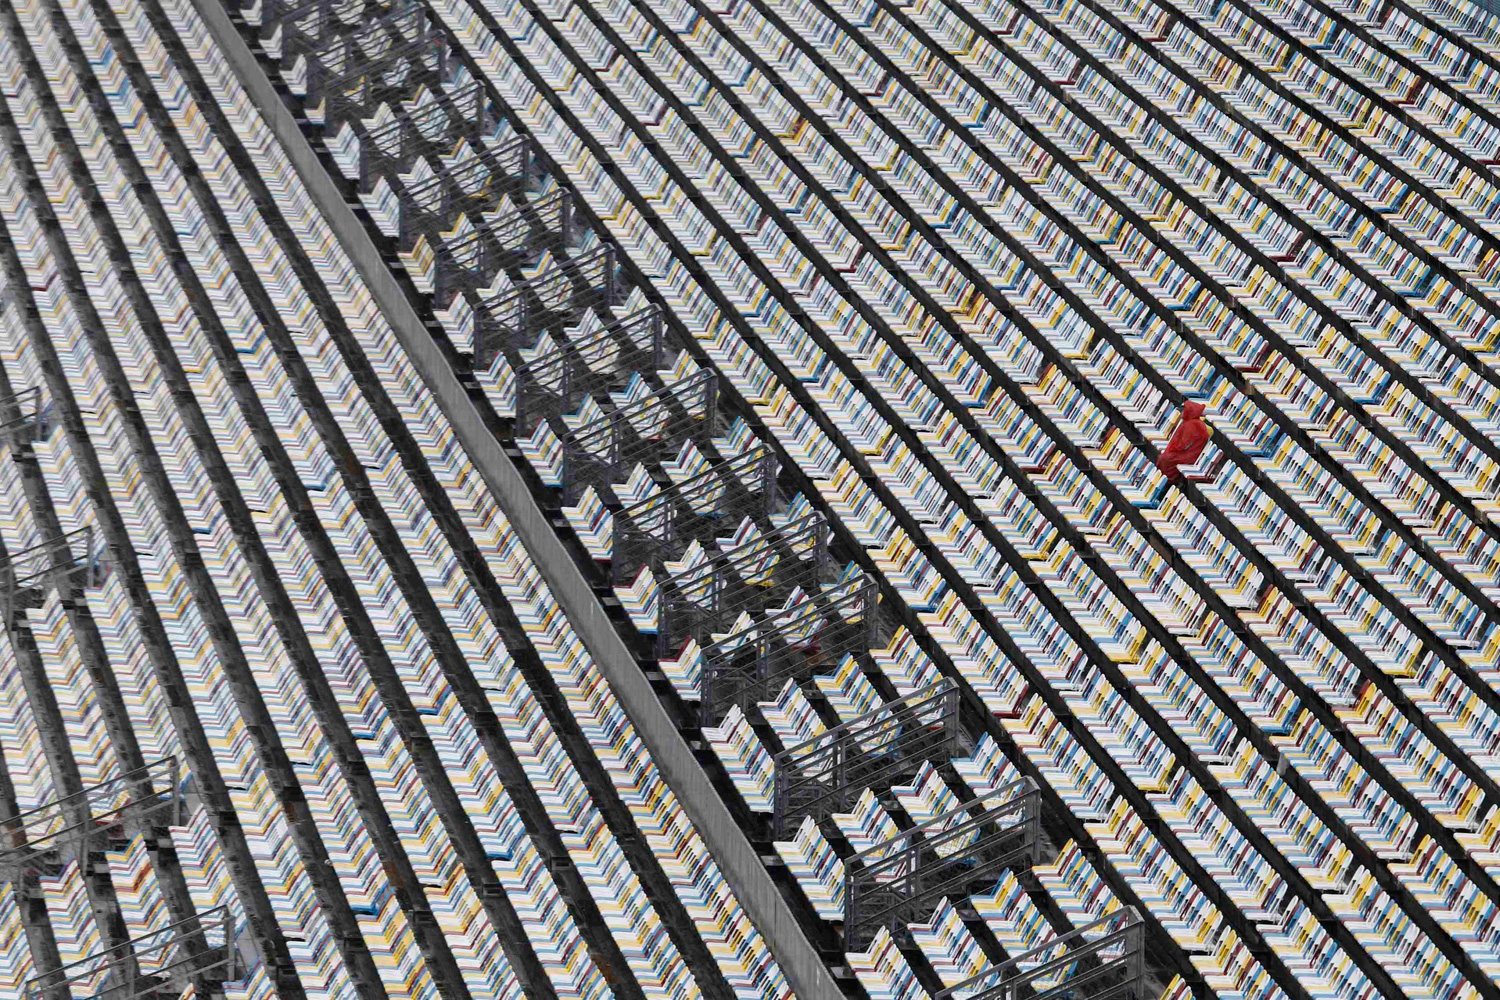 Feb. 27, 2012. A race fan sits surrounded by empty seats in anticipation of the NASCAR Sprint Cup Series 54th Daytona 500 race in Daytona Beach, Fla.